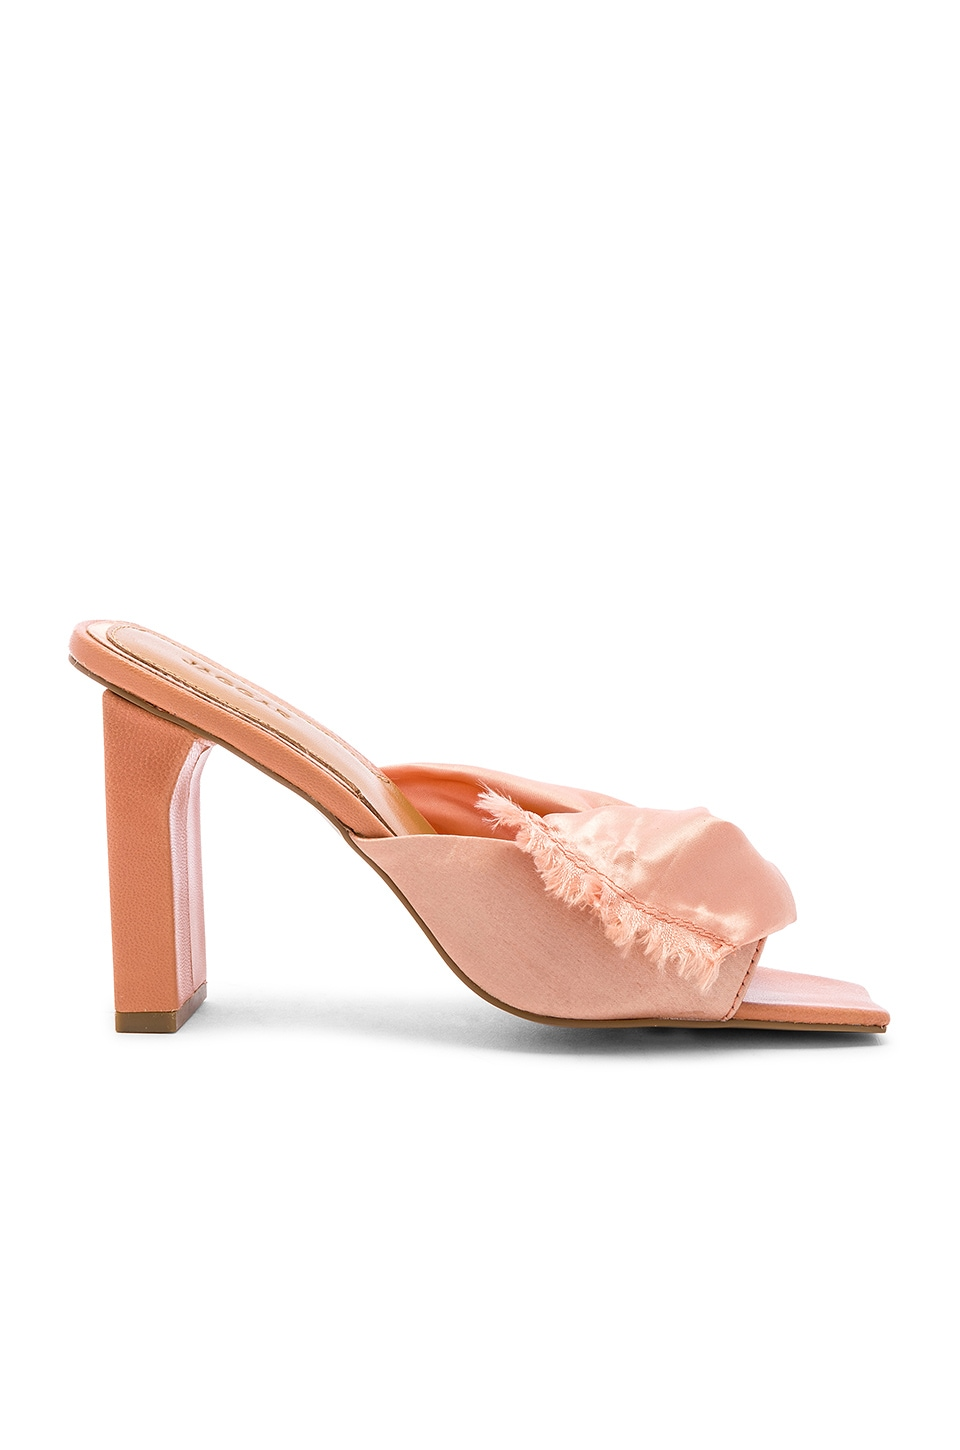 JAGGAR Knot Satin Heel in Clay